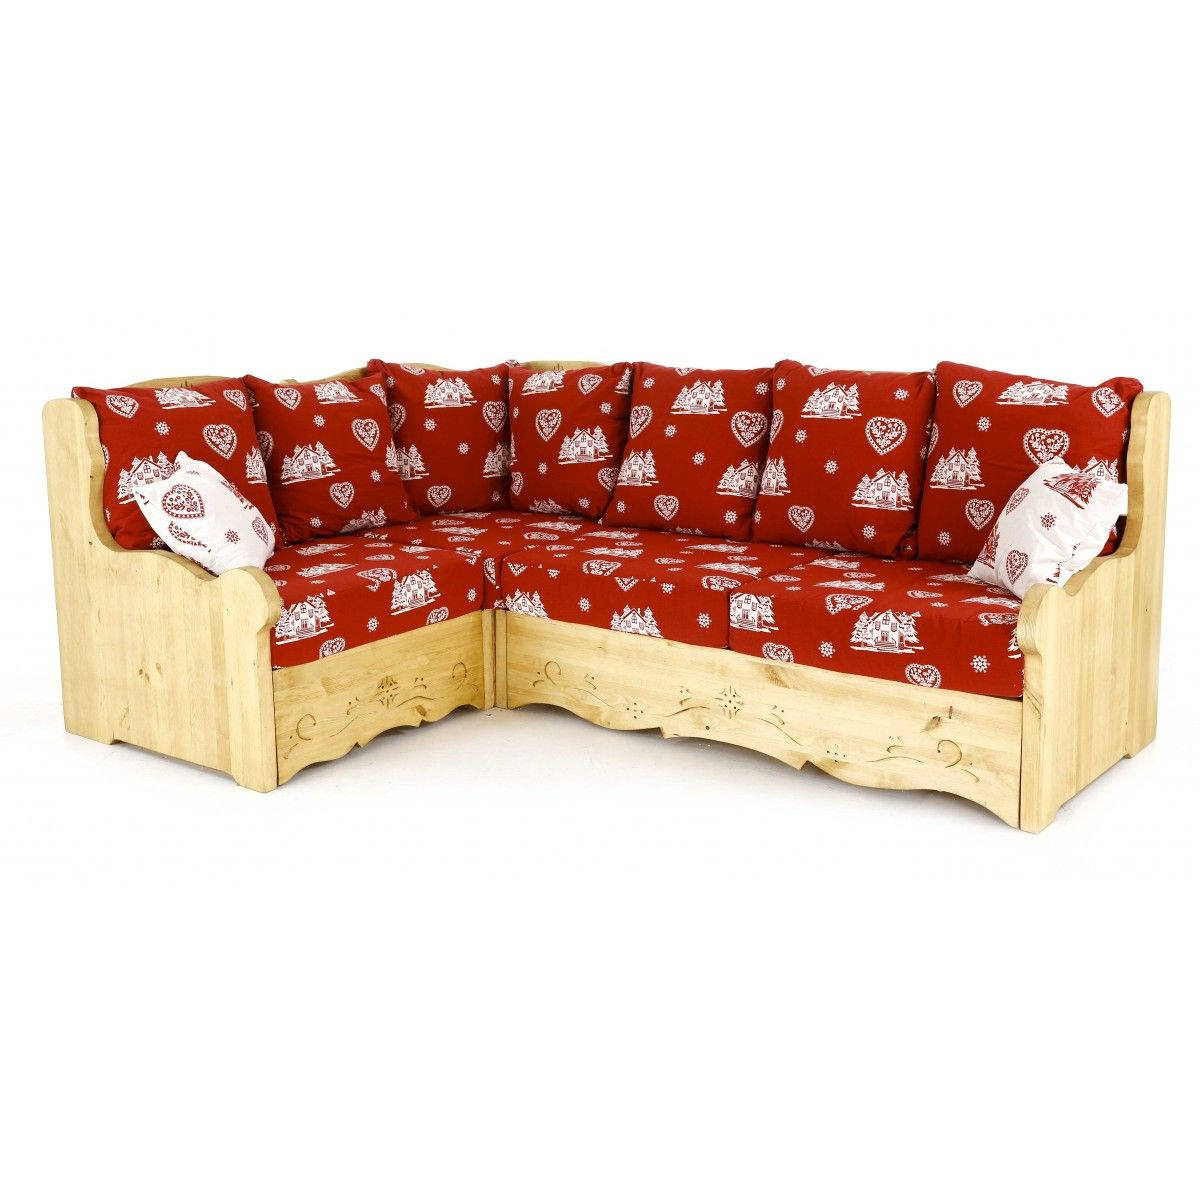 Canape D Angle Coffre Style Chalet Rouge Courchevel Canape D Angle Modulable Canape Angle Pin Massif